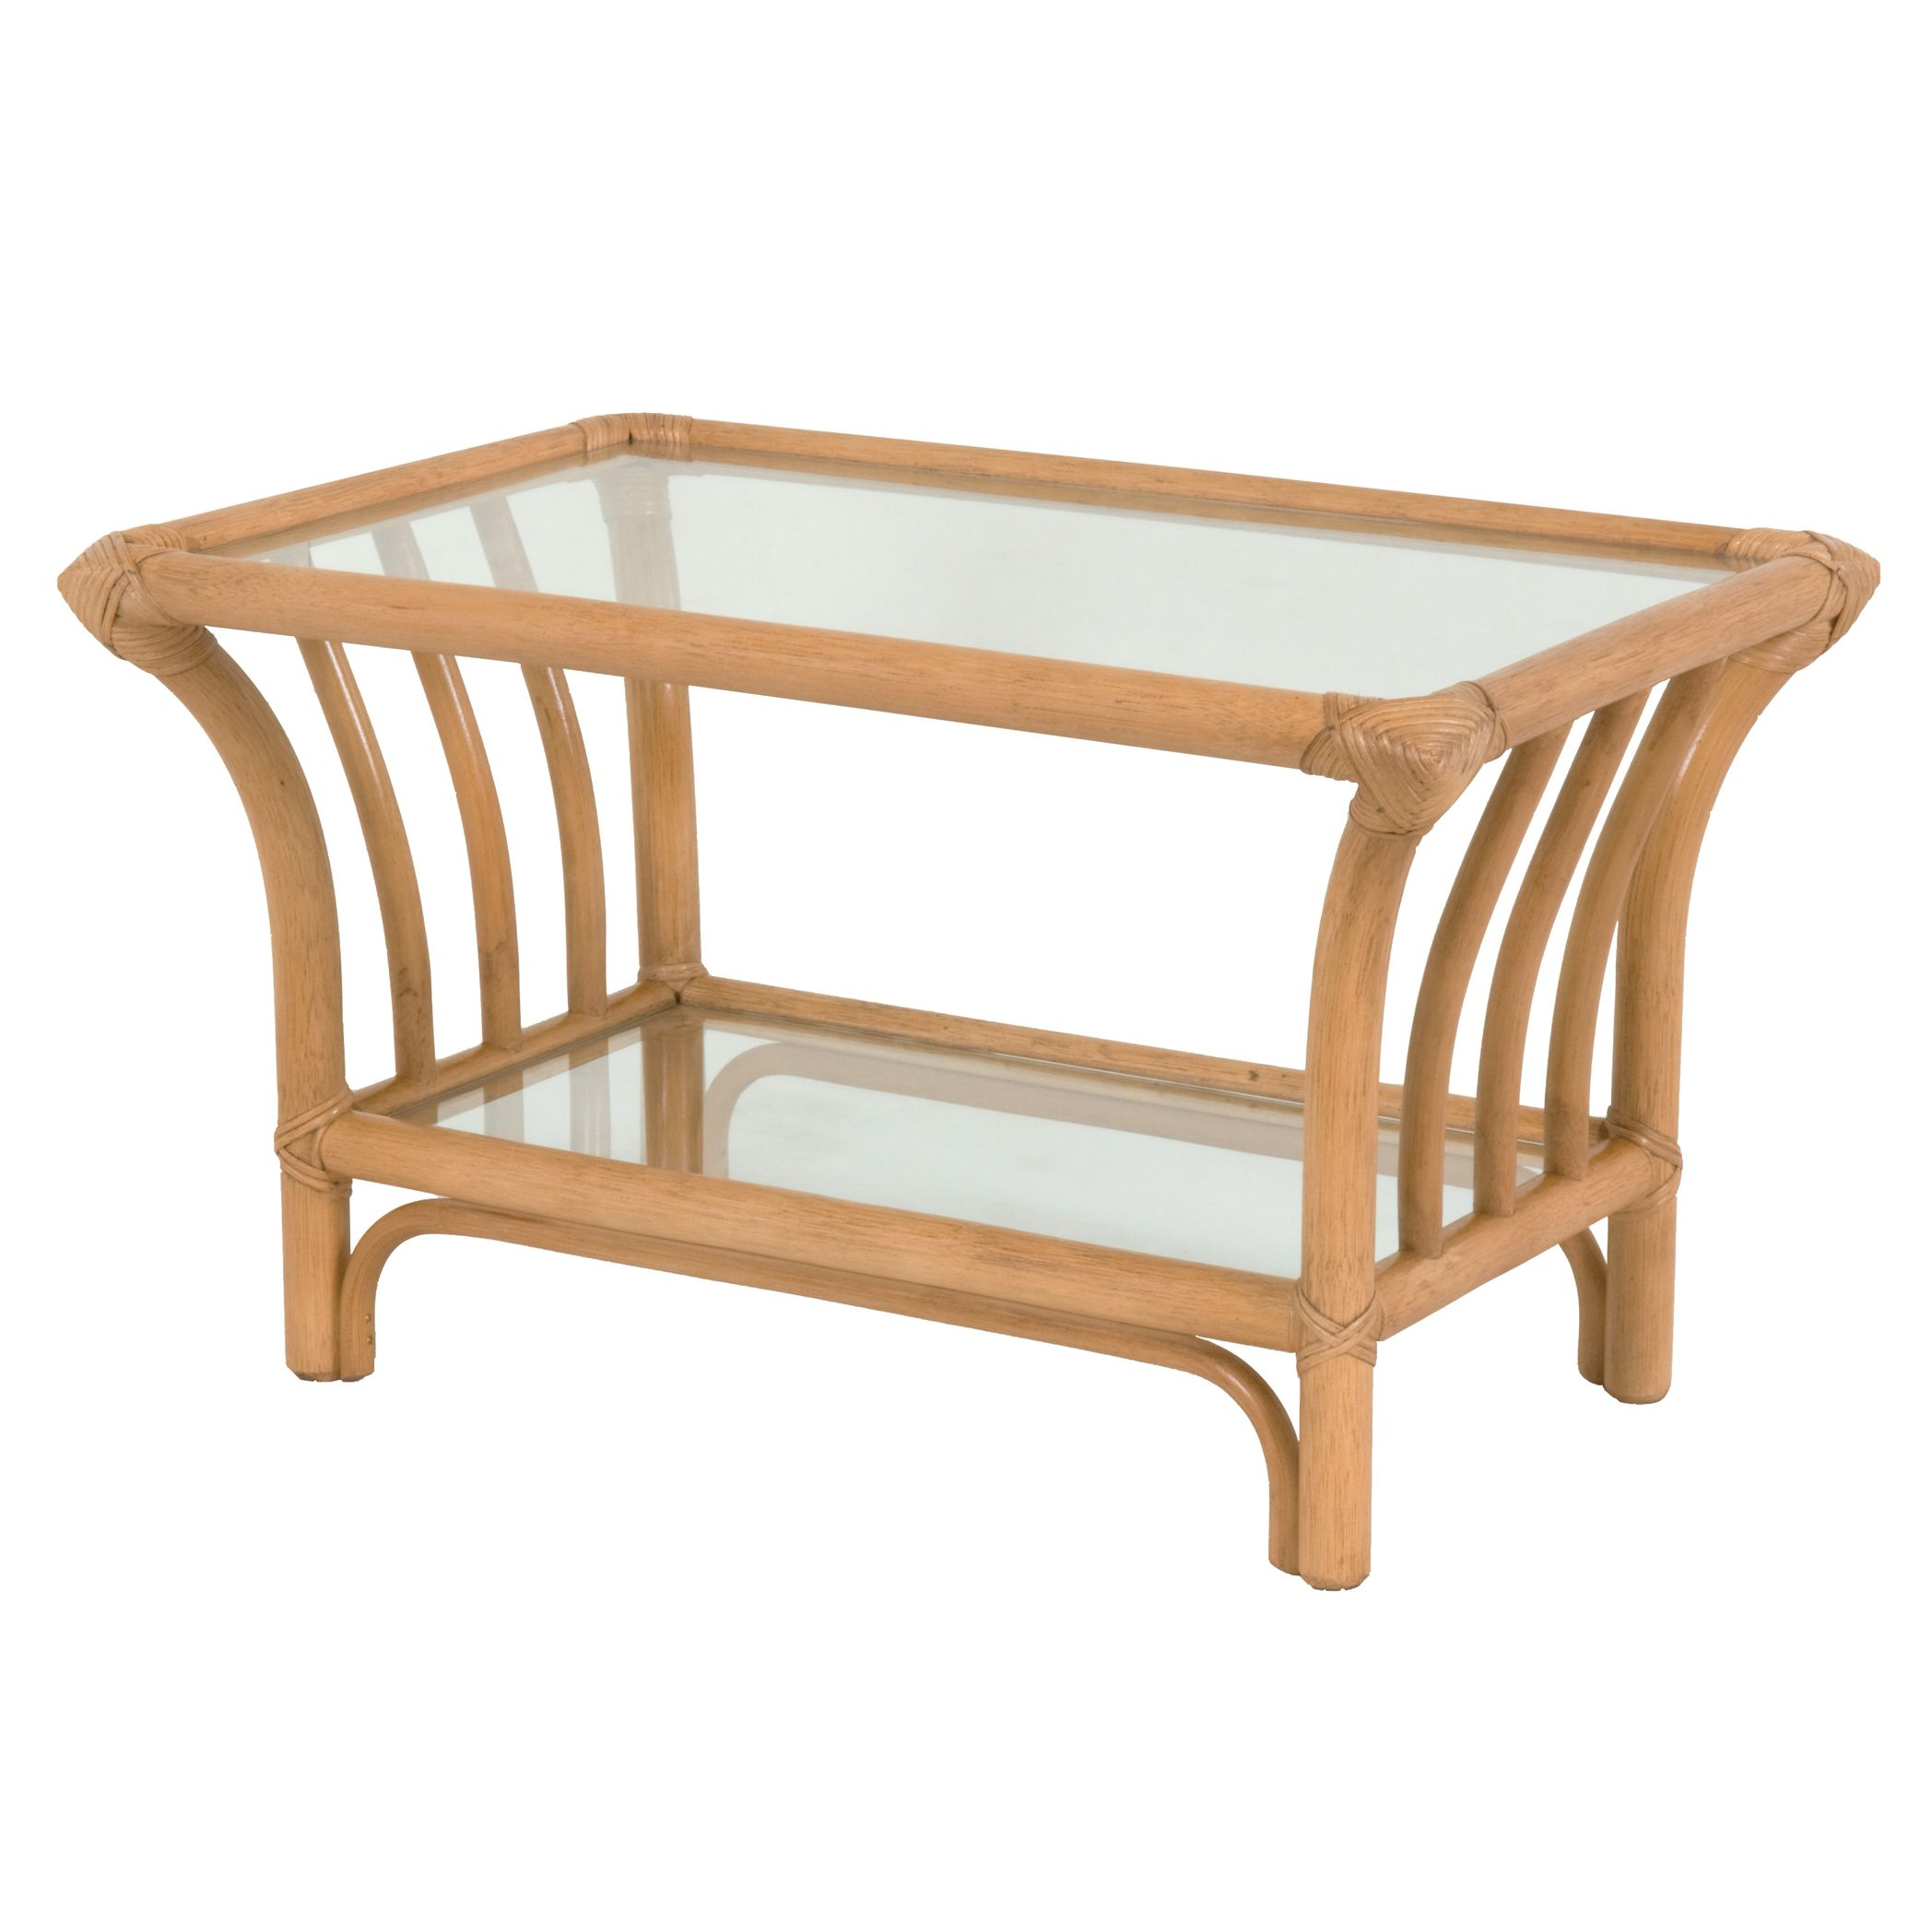 john lewis cane furniture : 230476036 from www.comparestoreprices.co.uk size 2096 x 2096 jpeg 173kB